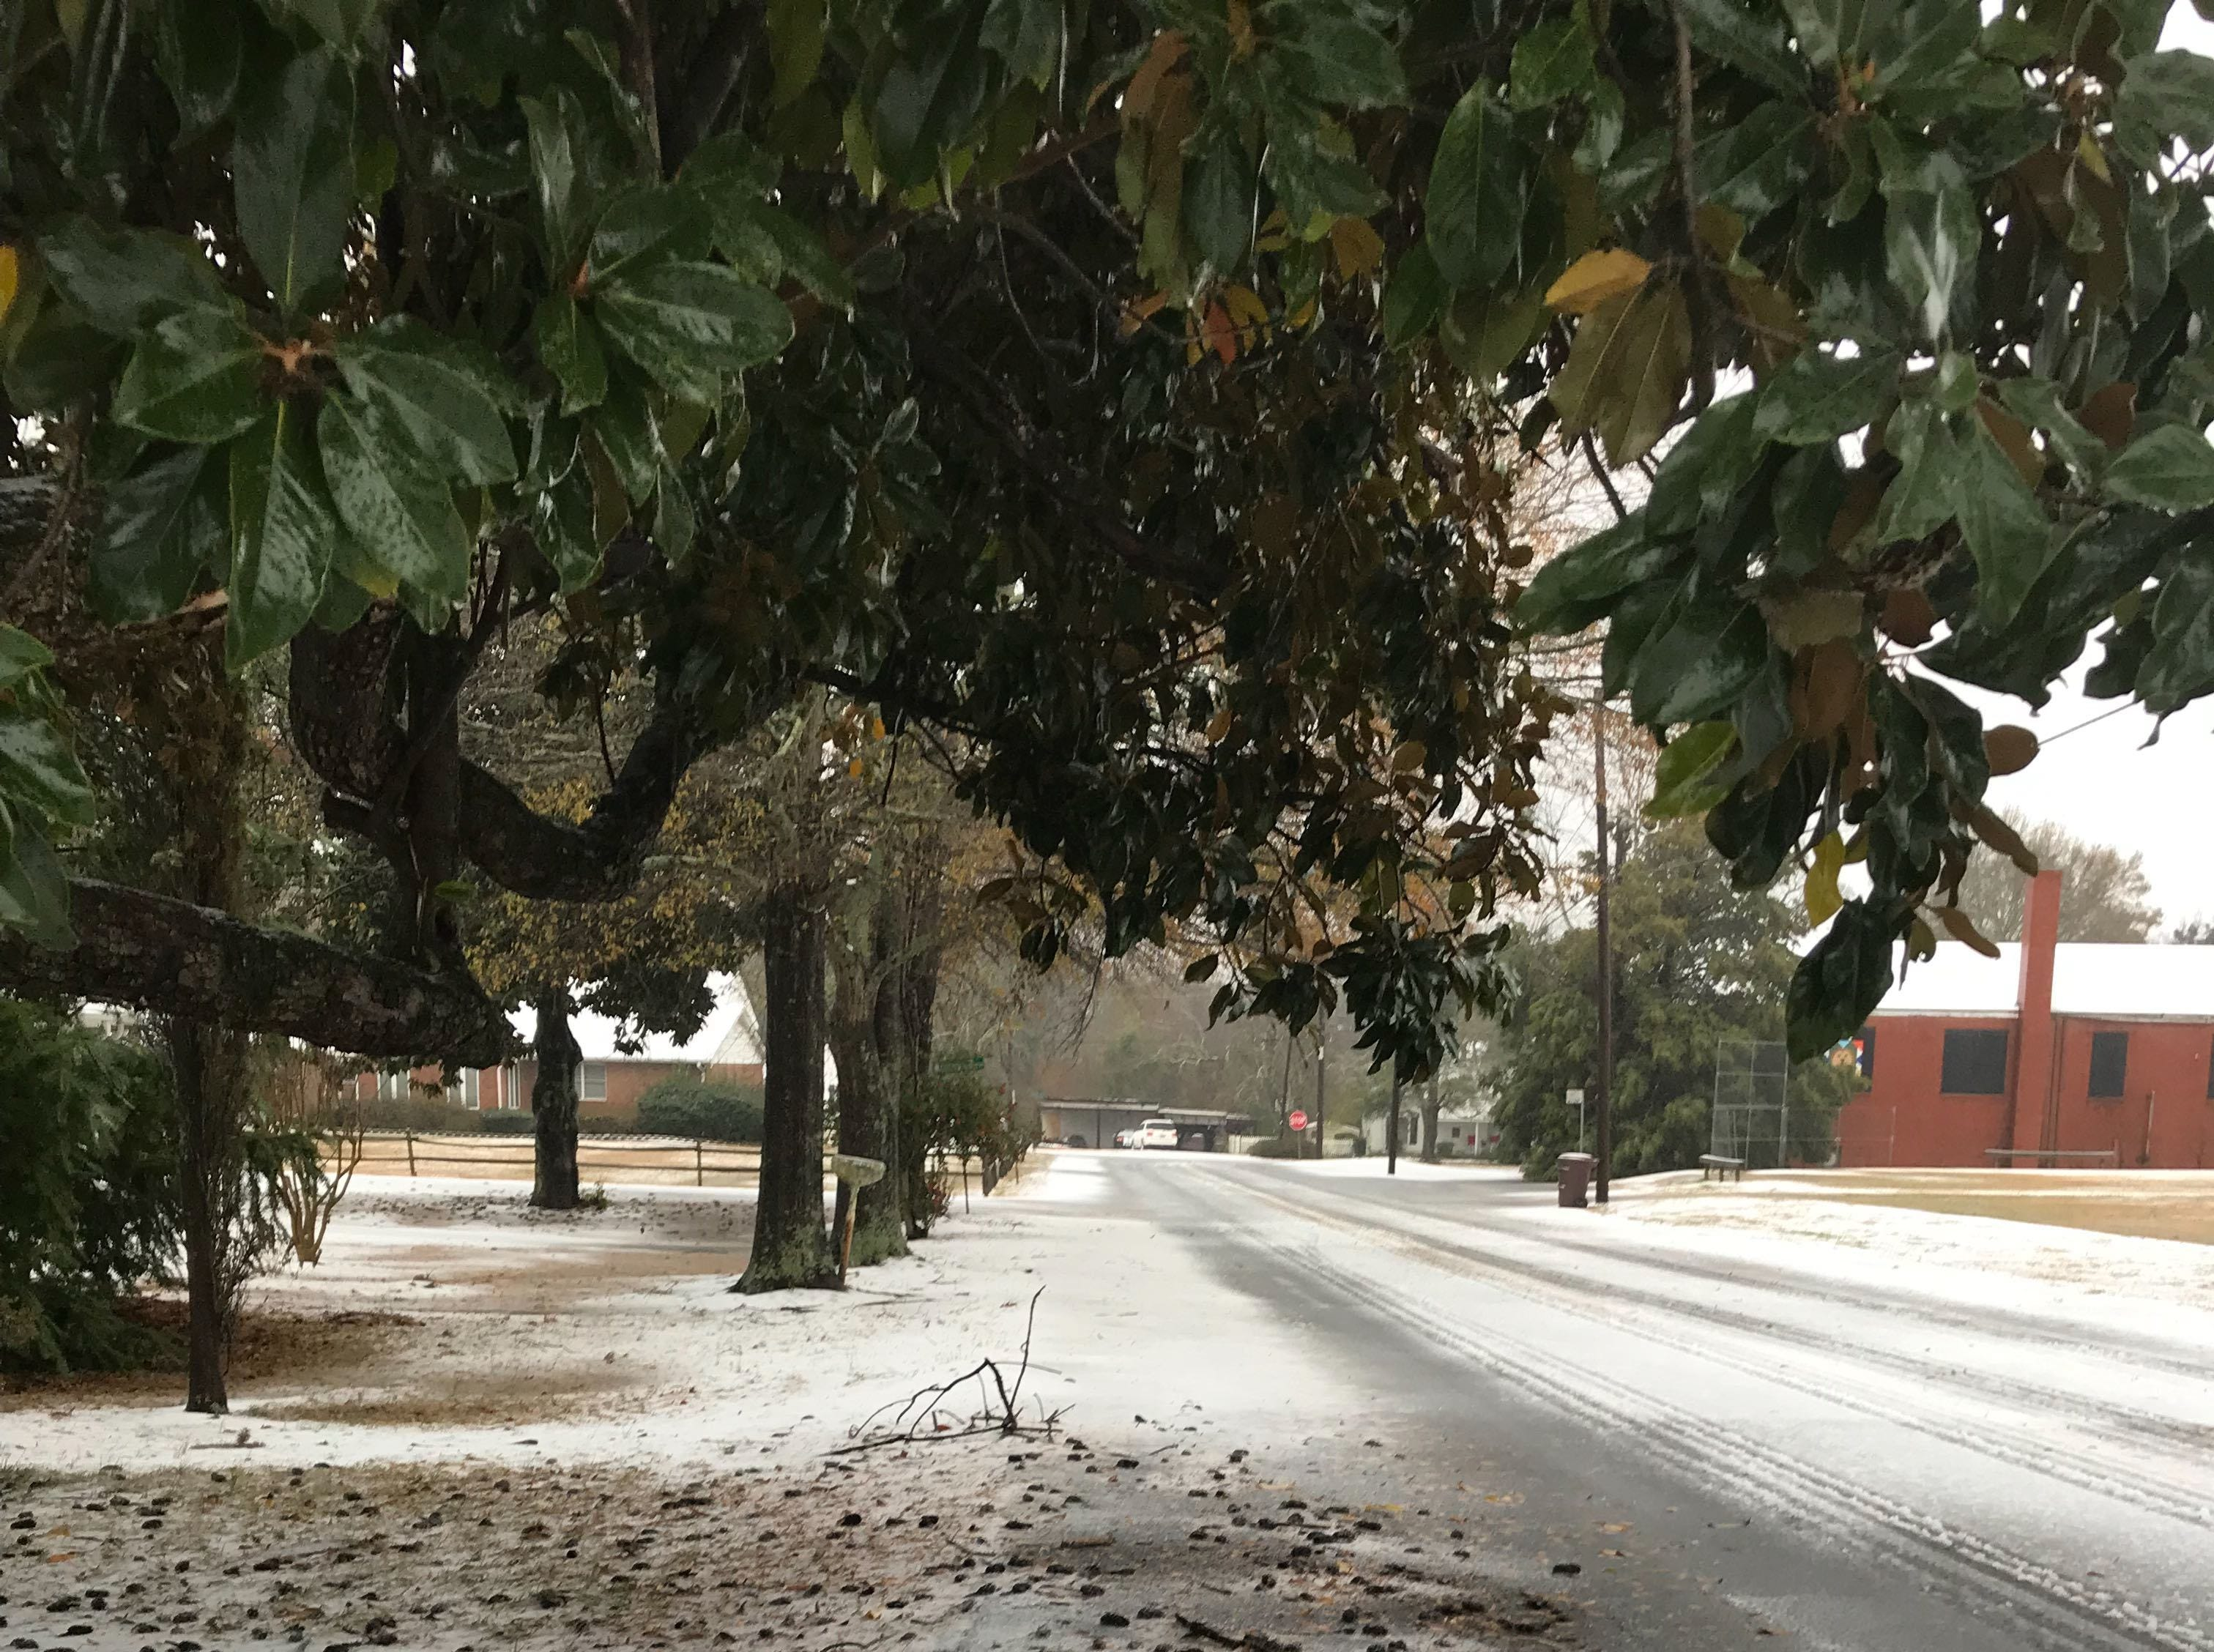 Sleet coming down hard early on Sunday, Dec. 9, 2018, in Pendleton.